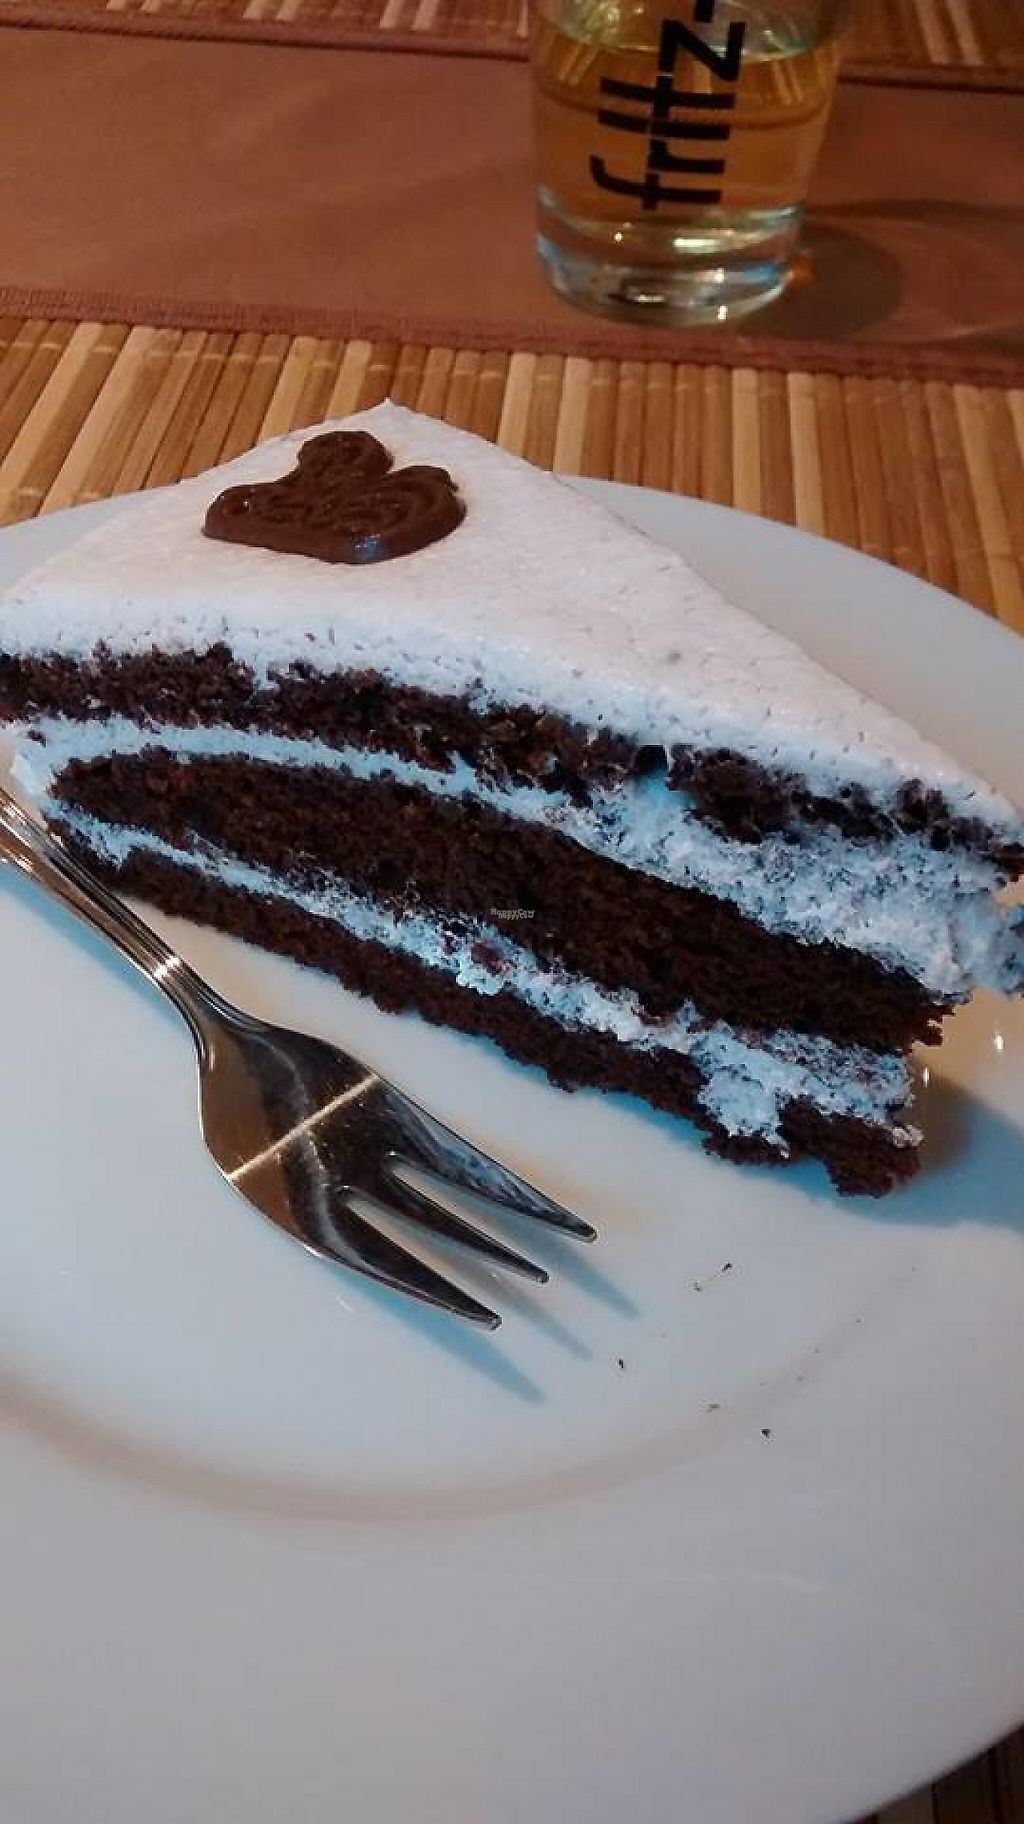 """Photo of Loving Hut  by <a href=""""/members/profile/BlisterBlue"""">BlisterBlue</a> <br/>Chocolate layer-cake for dessert, delicious! <br/> January 10, 2017  - <a href='/contact/abuse/image/22089/210321'>Report</a>"""